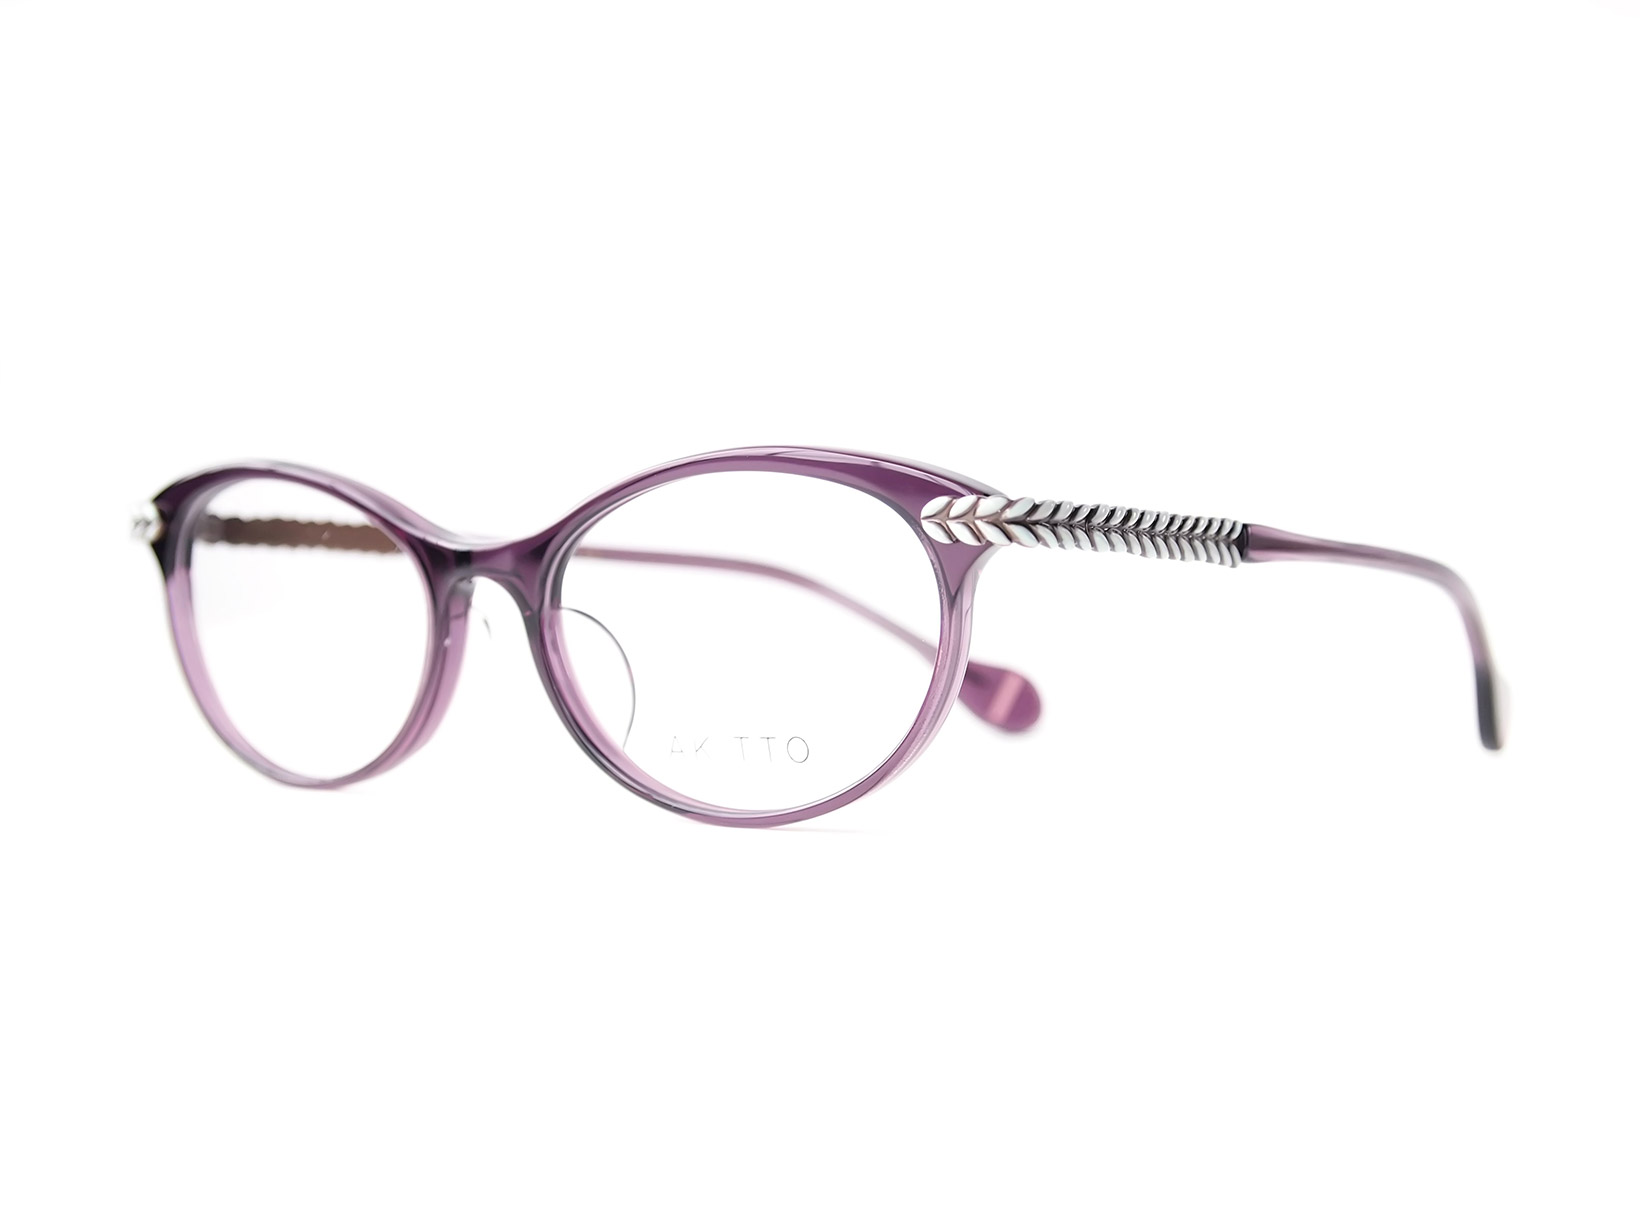 AKITTO 2016-3rd rey-p color|PU size:51□17 material:acetate+titanium price:44,500-(+tax)